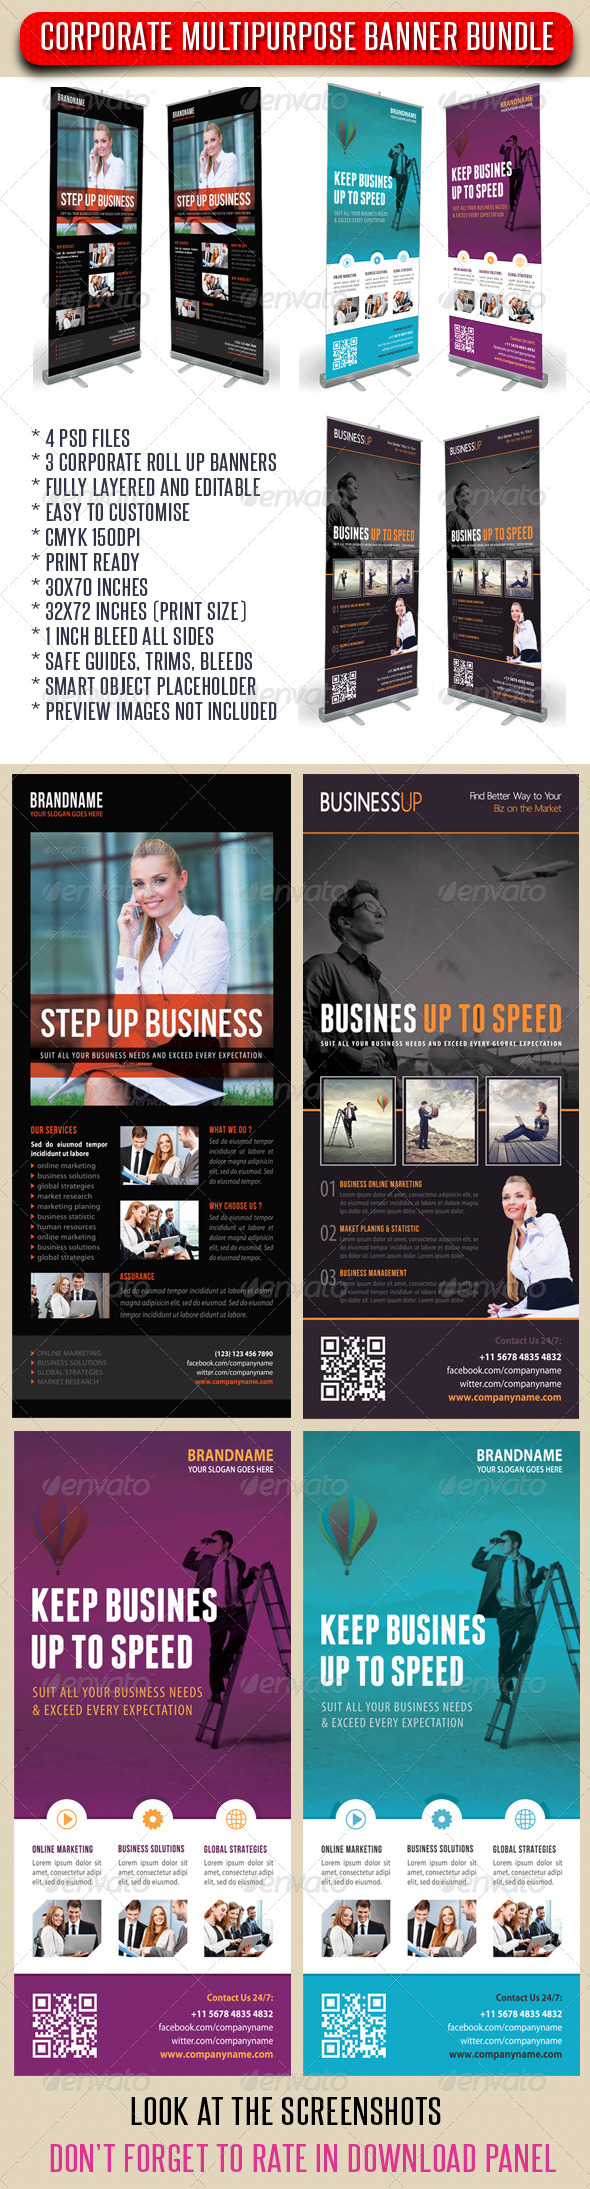 GraphicRiver 3 in 1 Corporate Rollup Banner Bundle 11 7598344